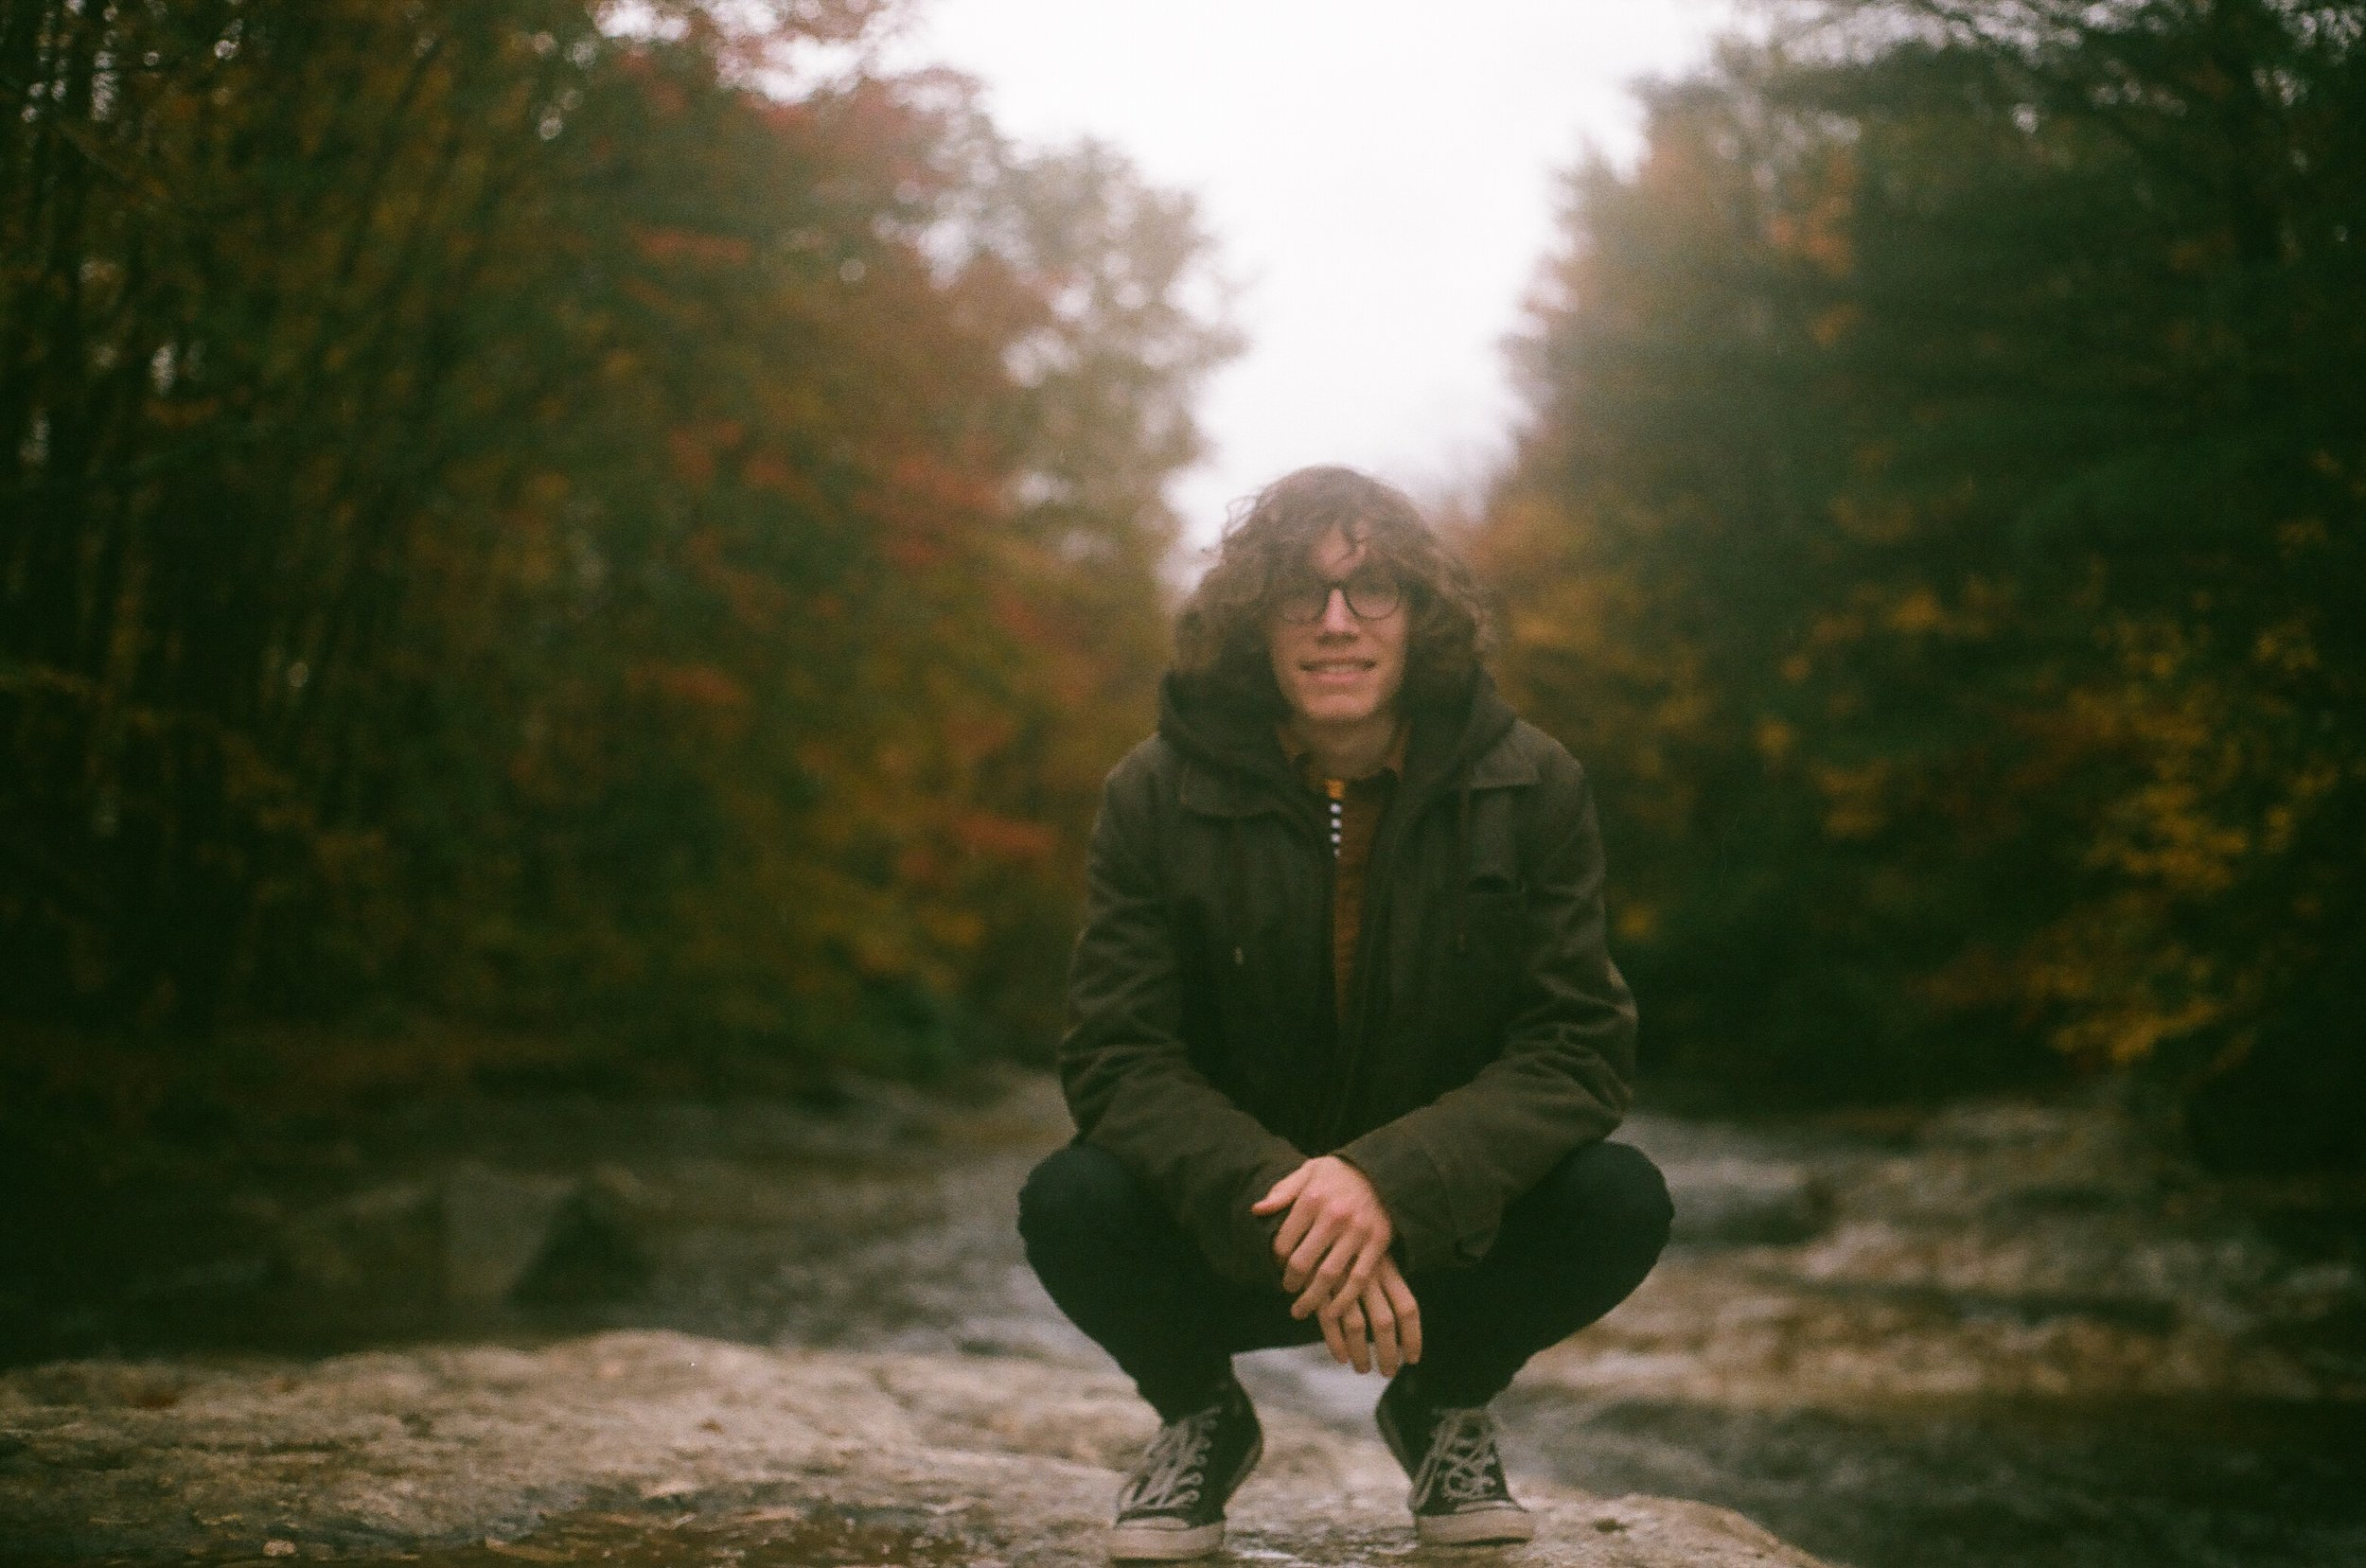 Me just around the river bend. Shot on 35mm